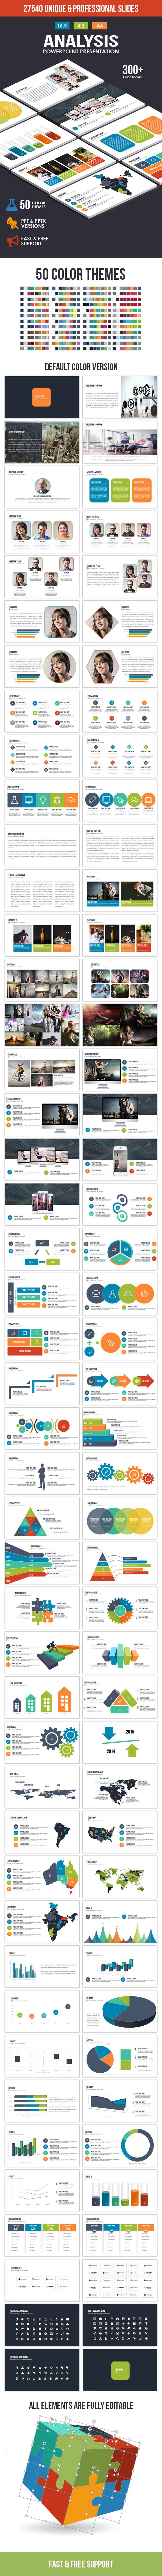 Analysis PowerPoint Template - Business PowerPoint Templates